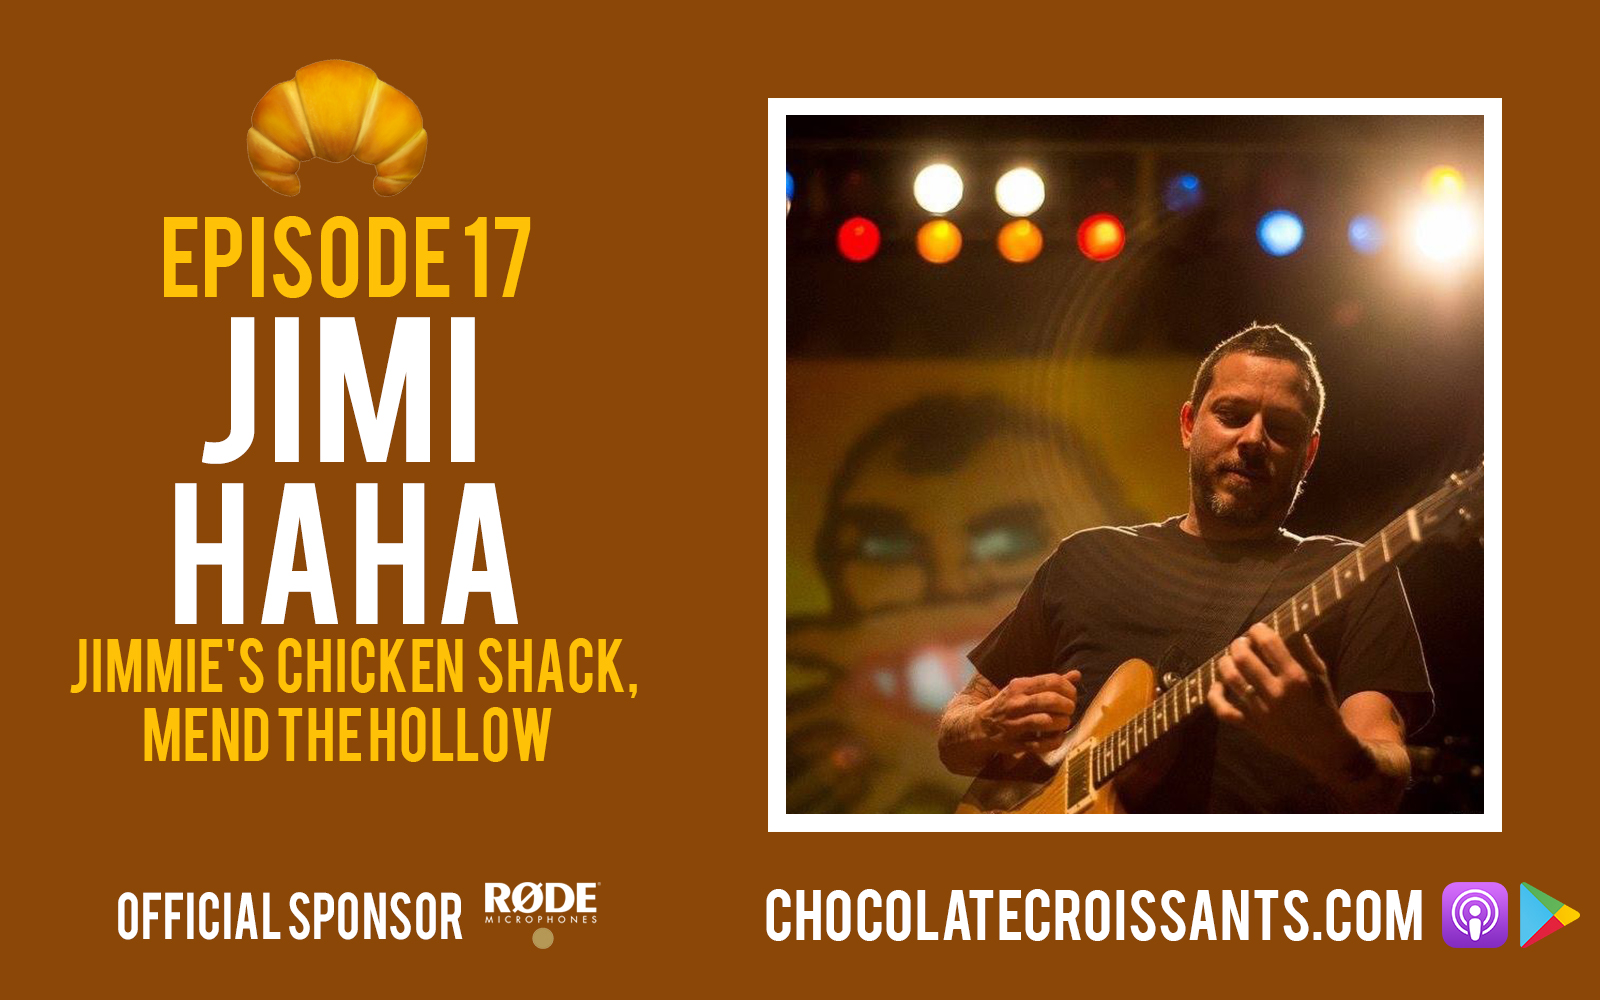 EP17 | Jimi Haha (Jimmie's Chicken Shack, Mend The Hollow)